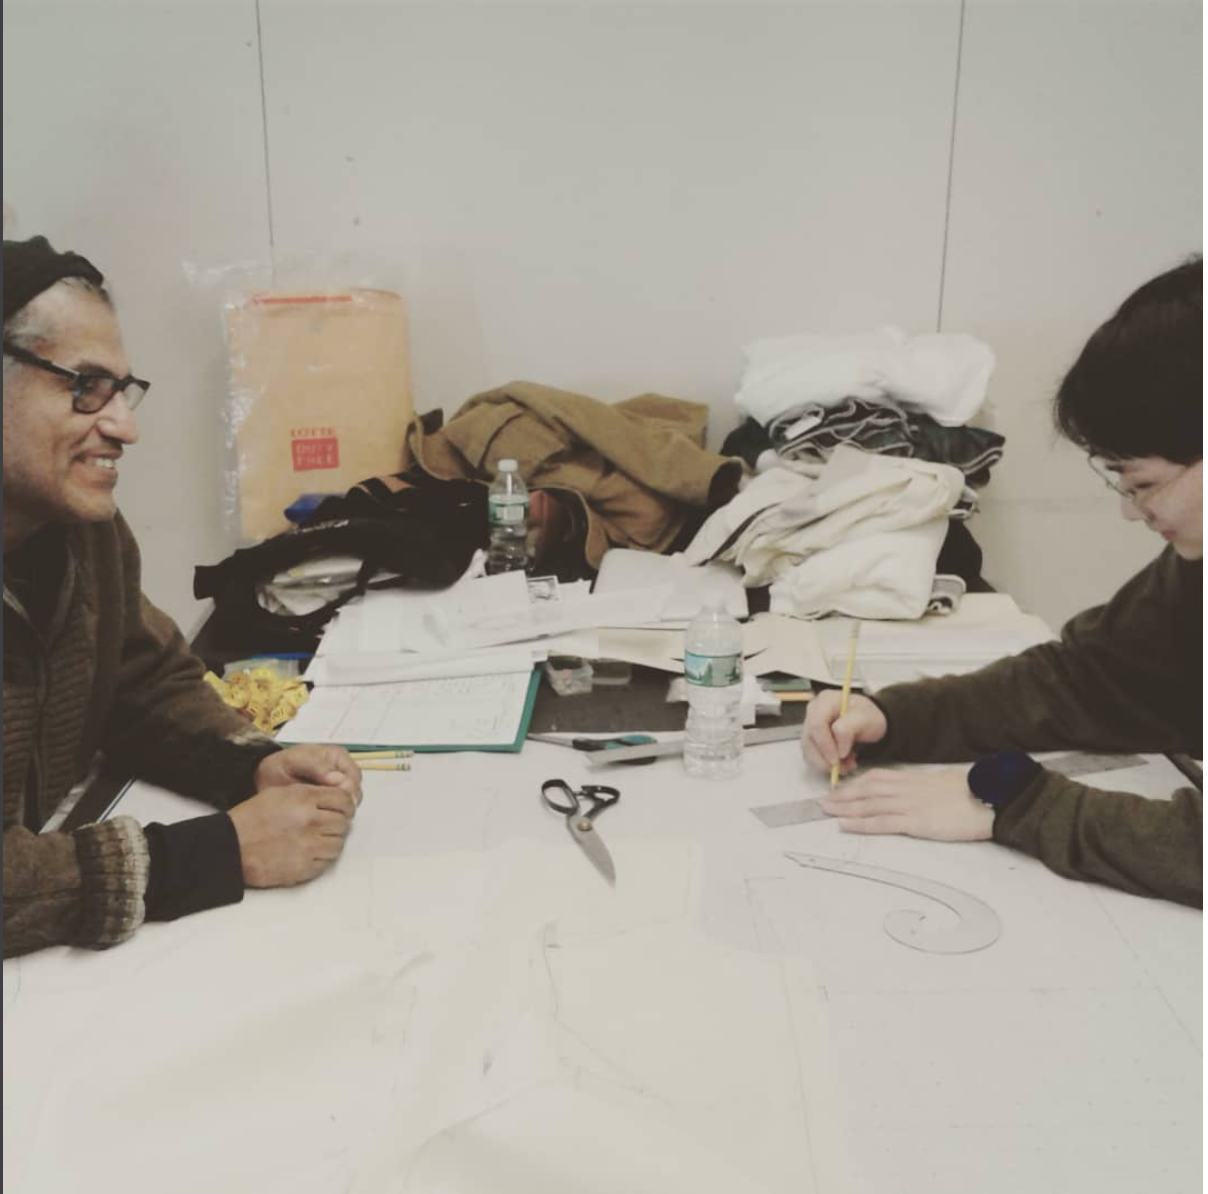 Mario and another FIT Student working on pattern drafting